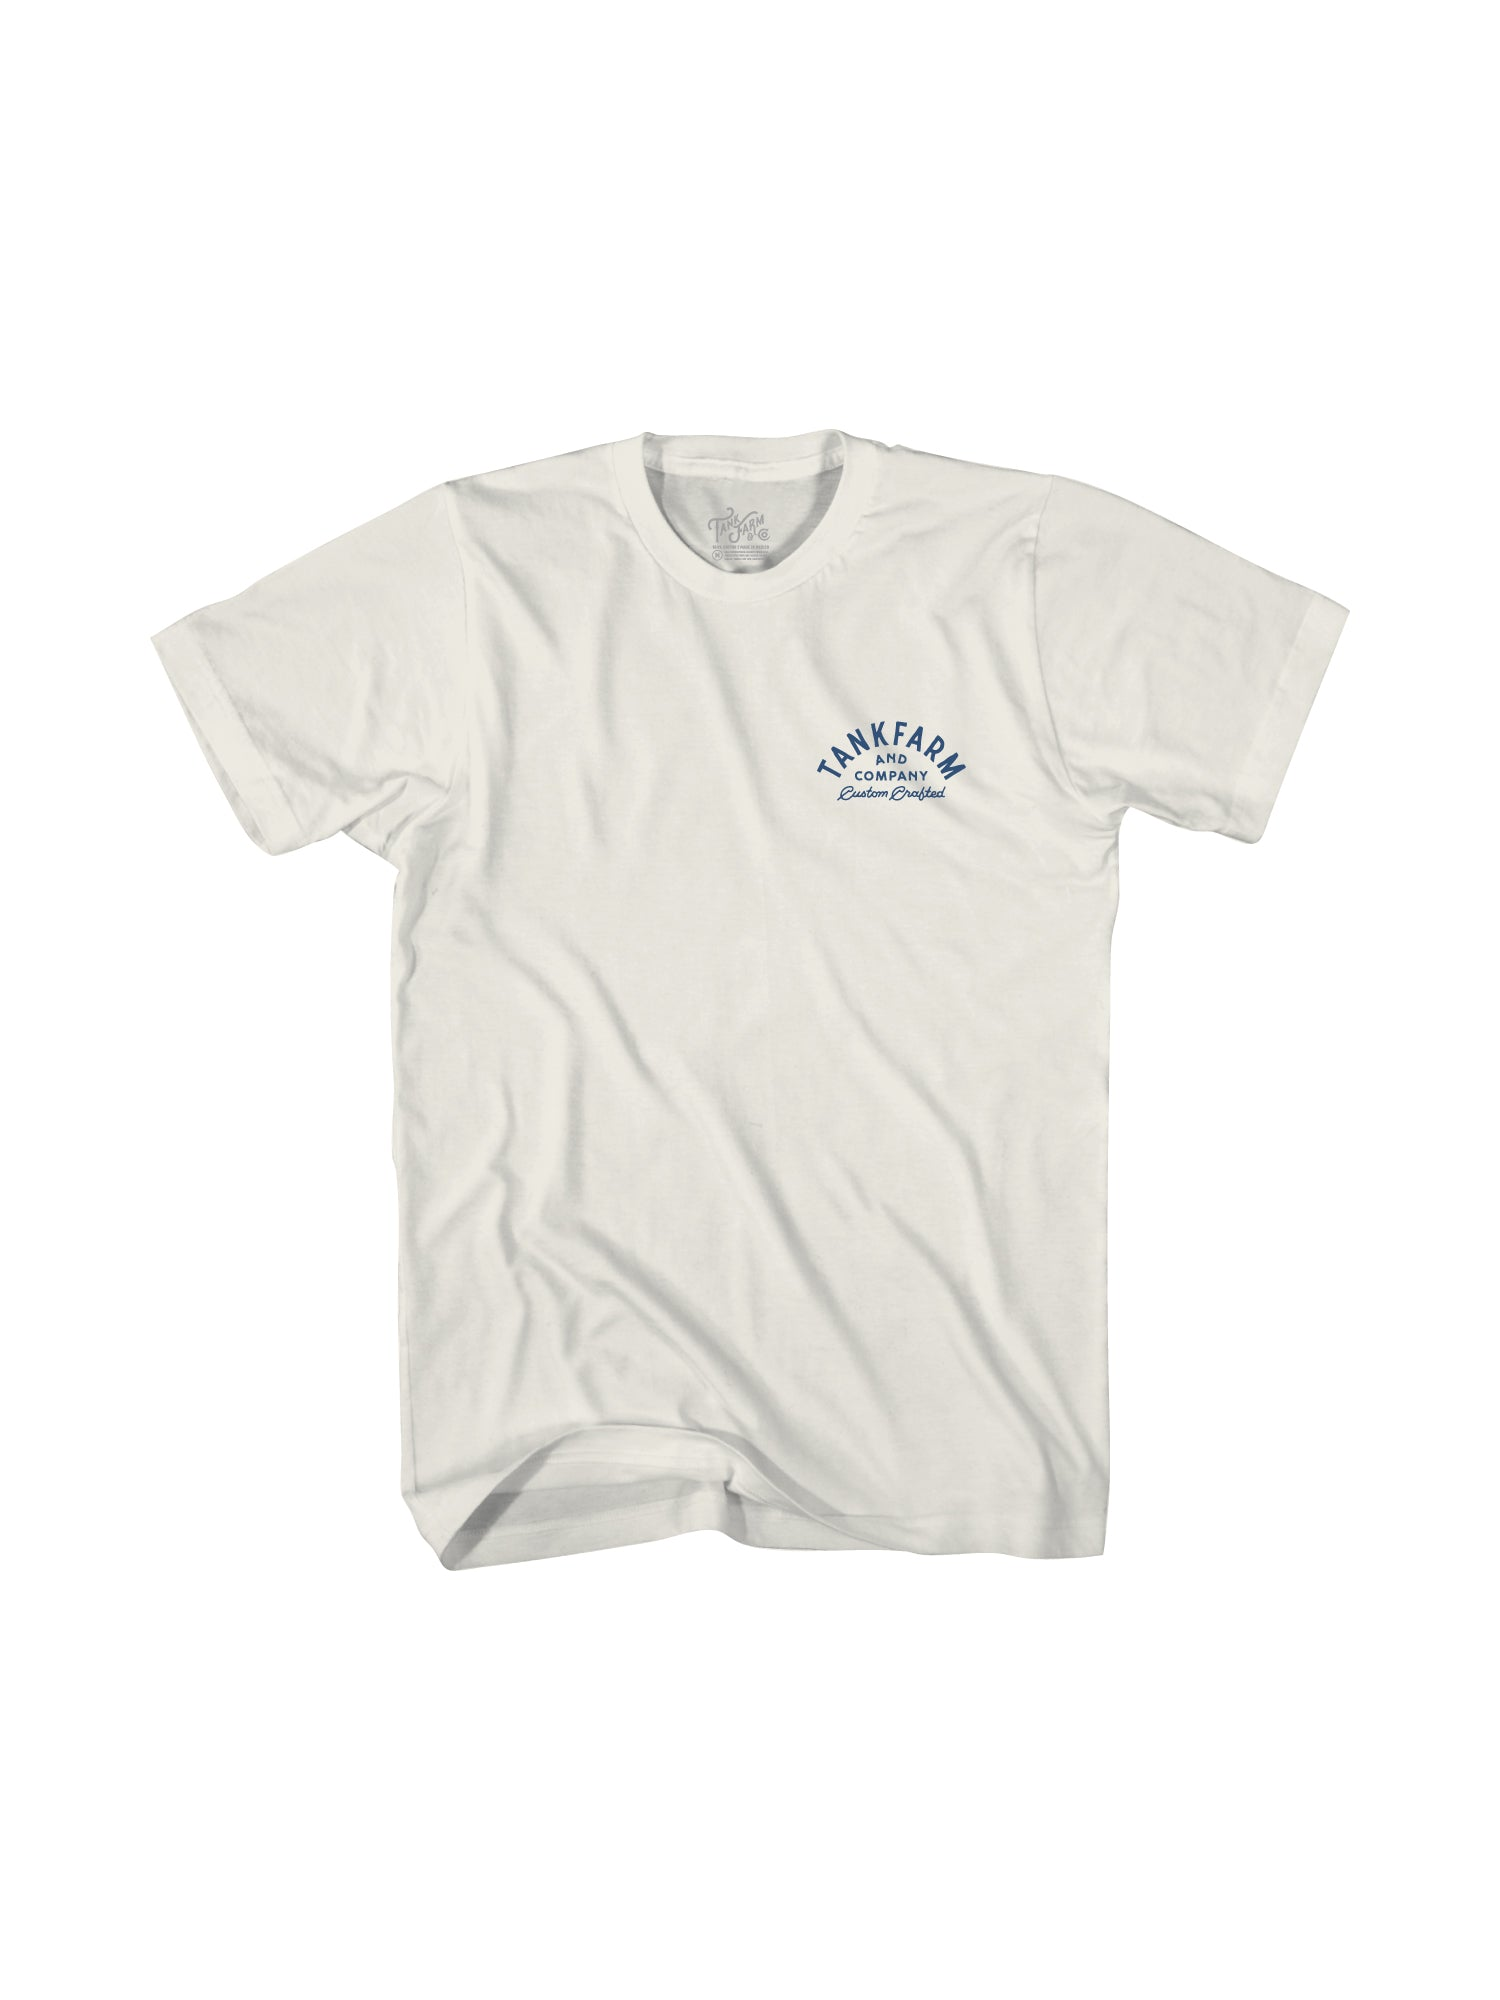 CRAFTED IN SB - WHITE/NAVY